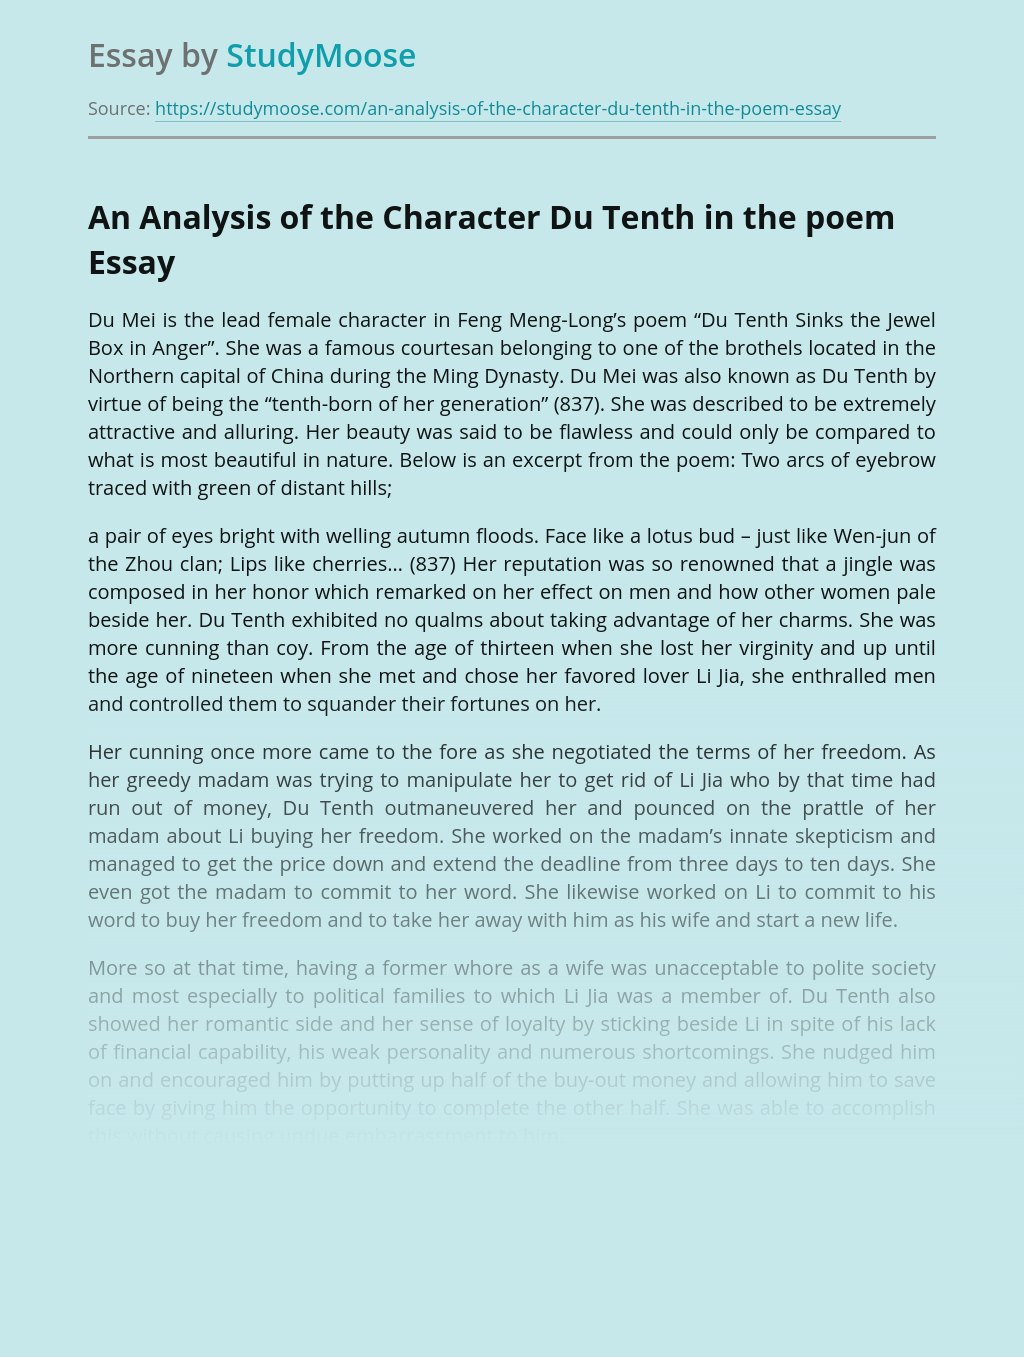 An Analysis of the Character Du Tenth in the poem